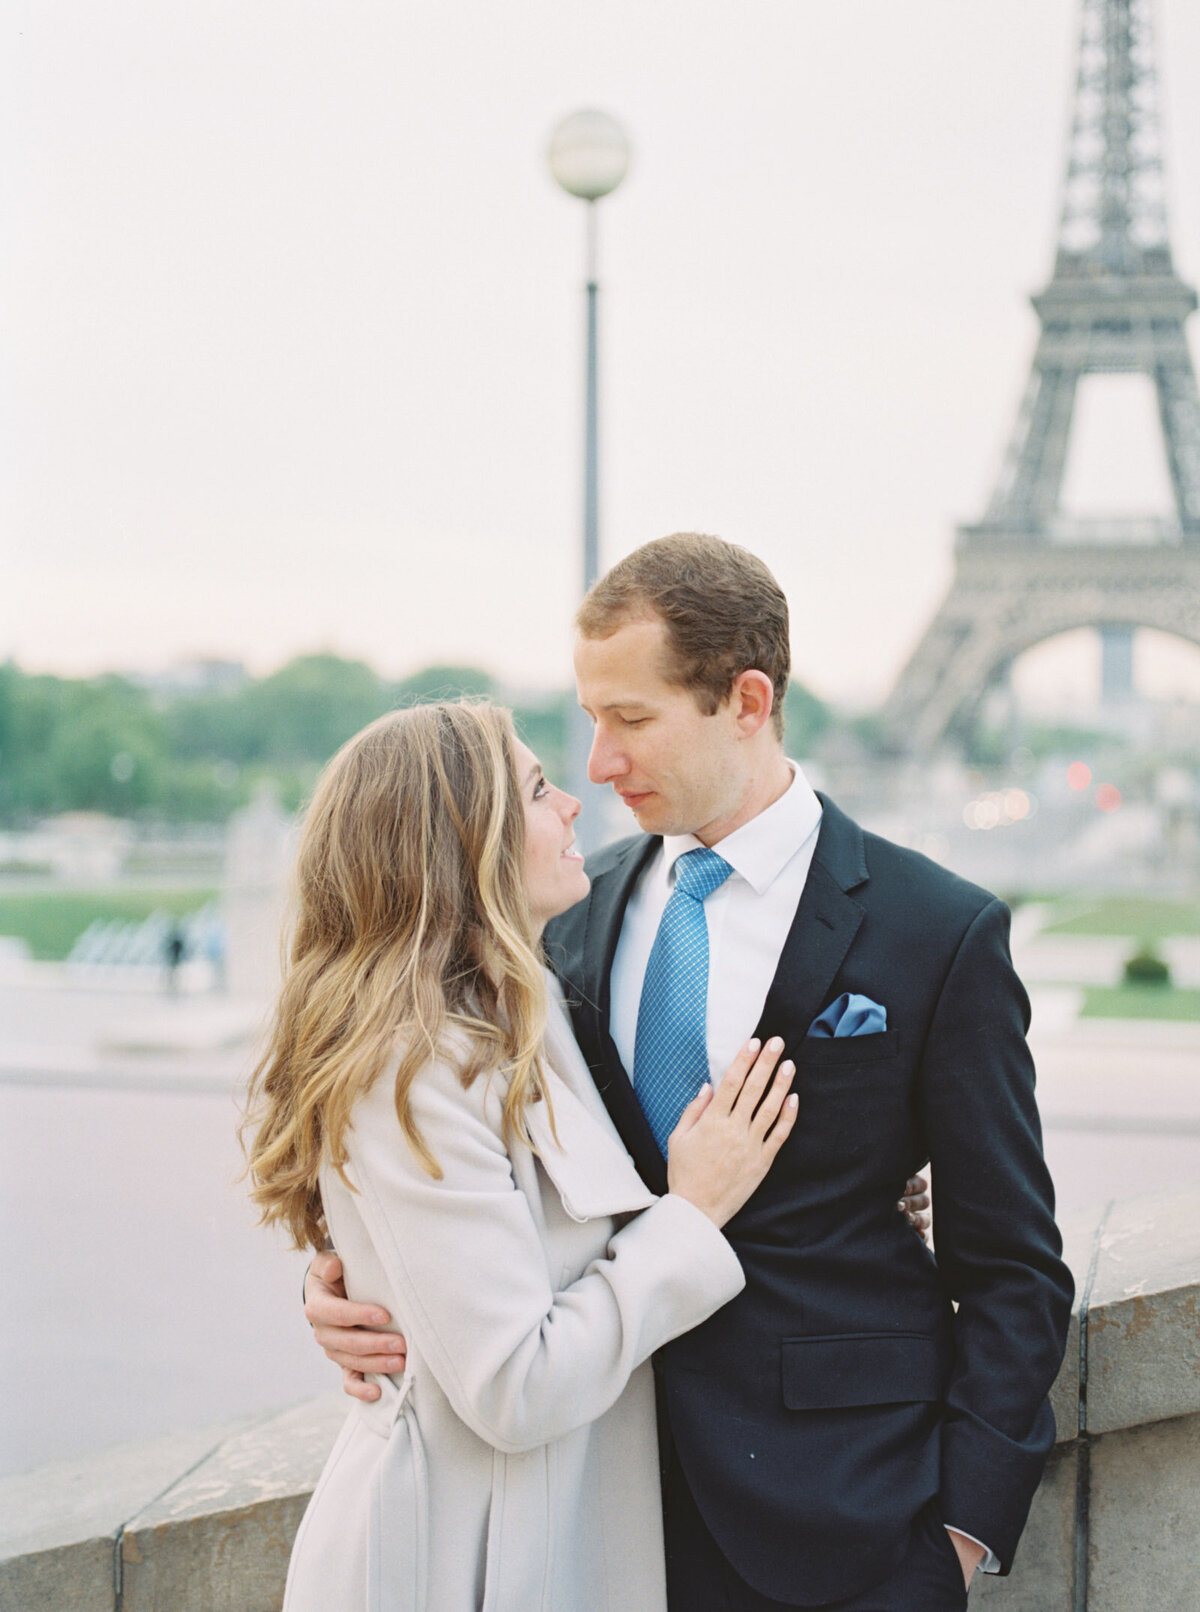 marcelaploskerphotography-paris_wedding-5